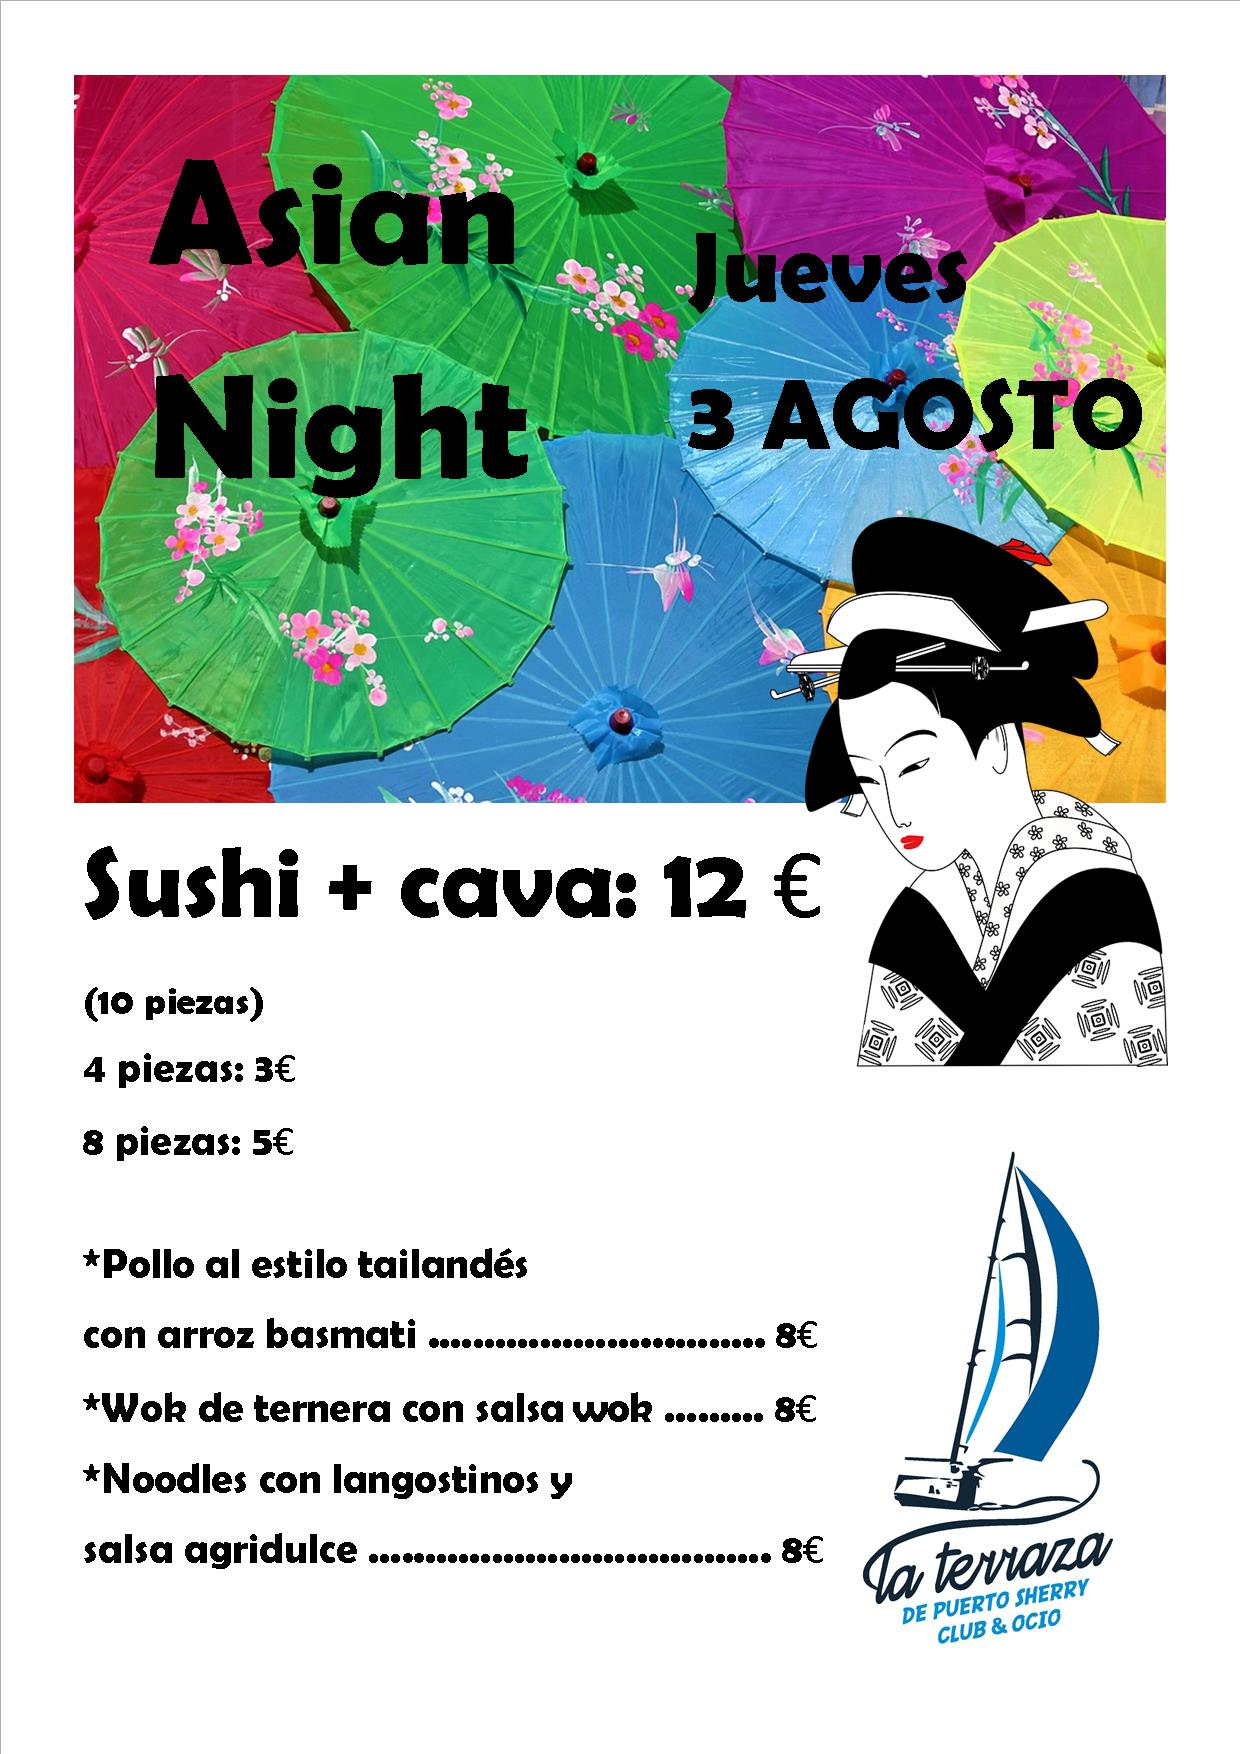 Asian Night (con carta para rrss)